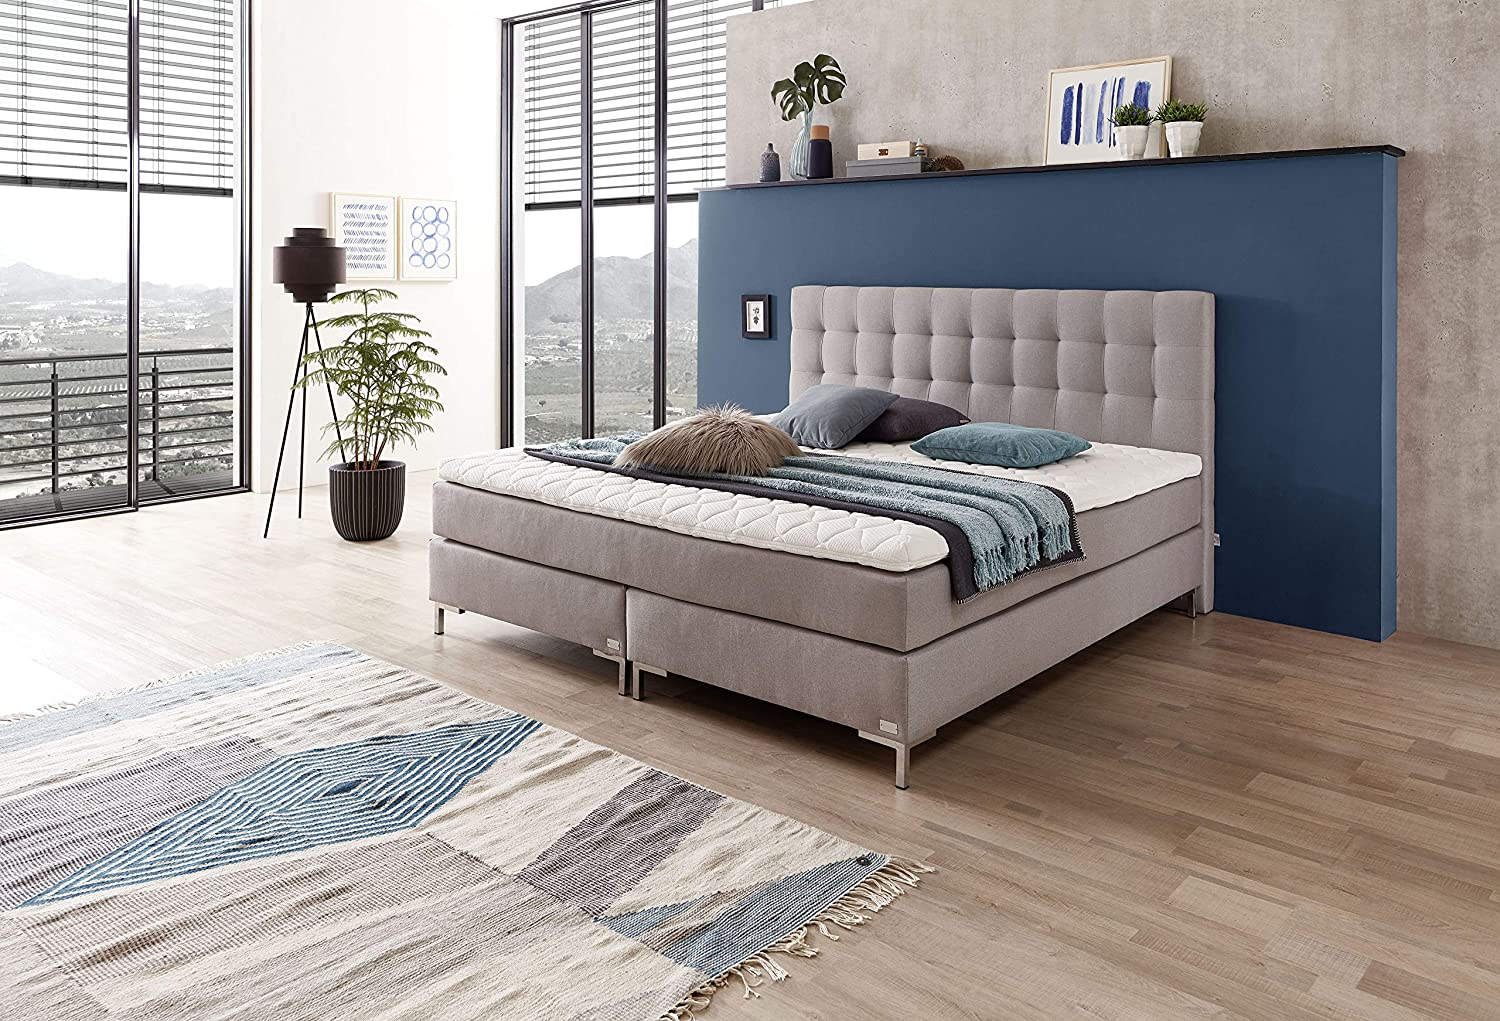 Topper 180x200 Boxspring.Welcon Luxury Box Spring Bed Rock Star 180x200 H3 Hardness